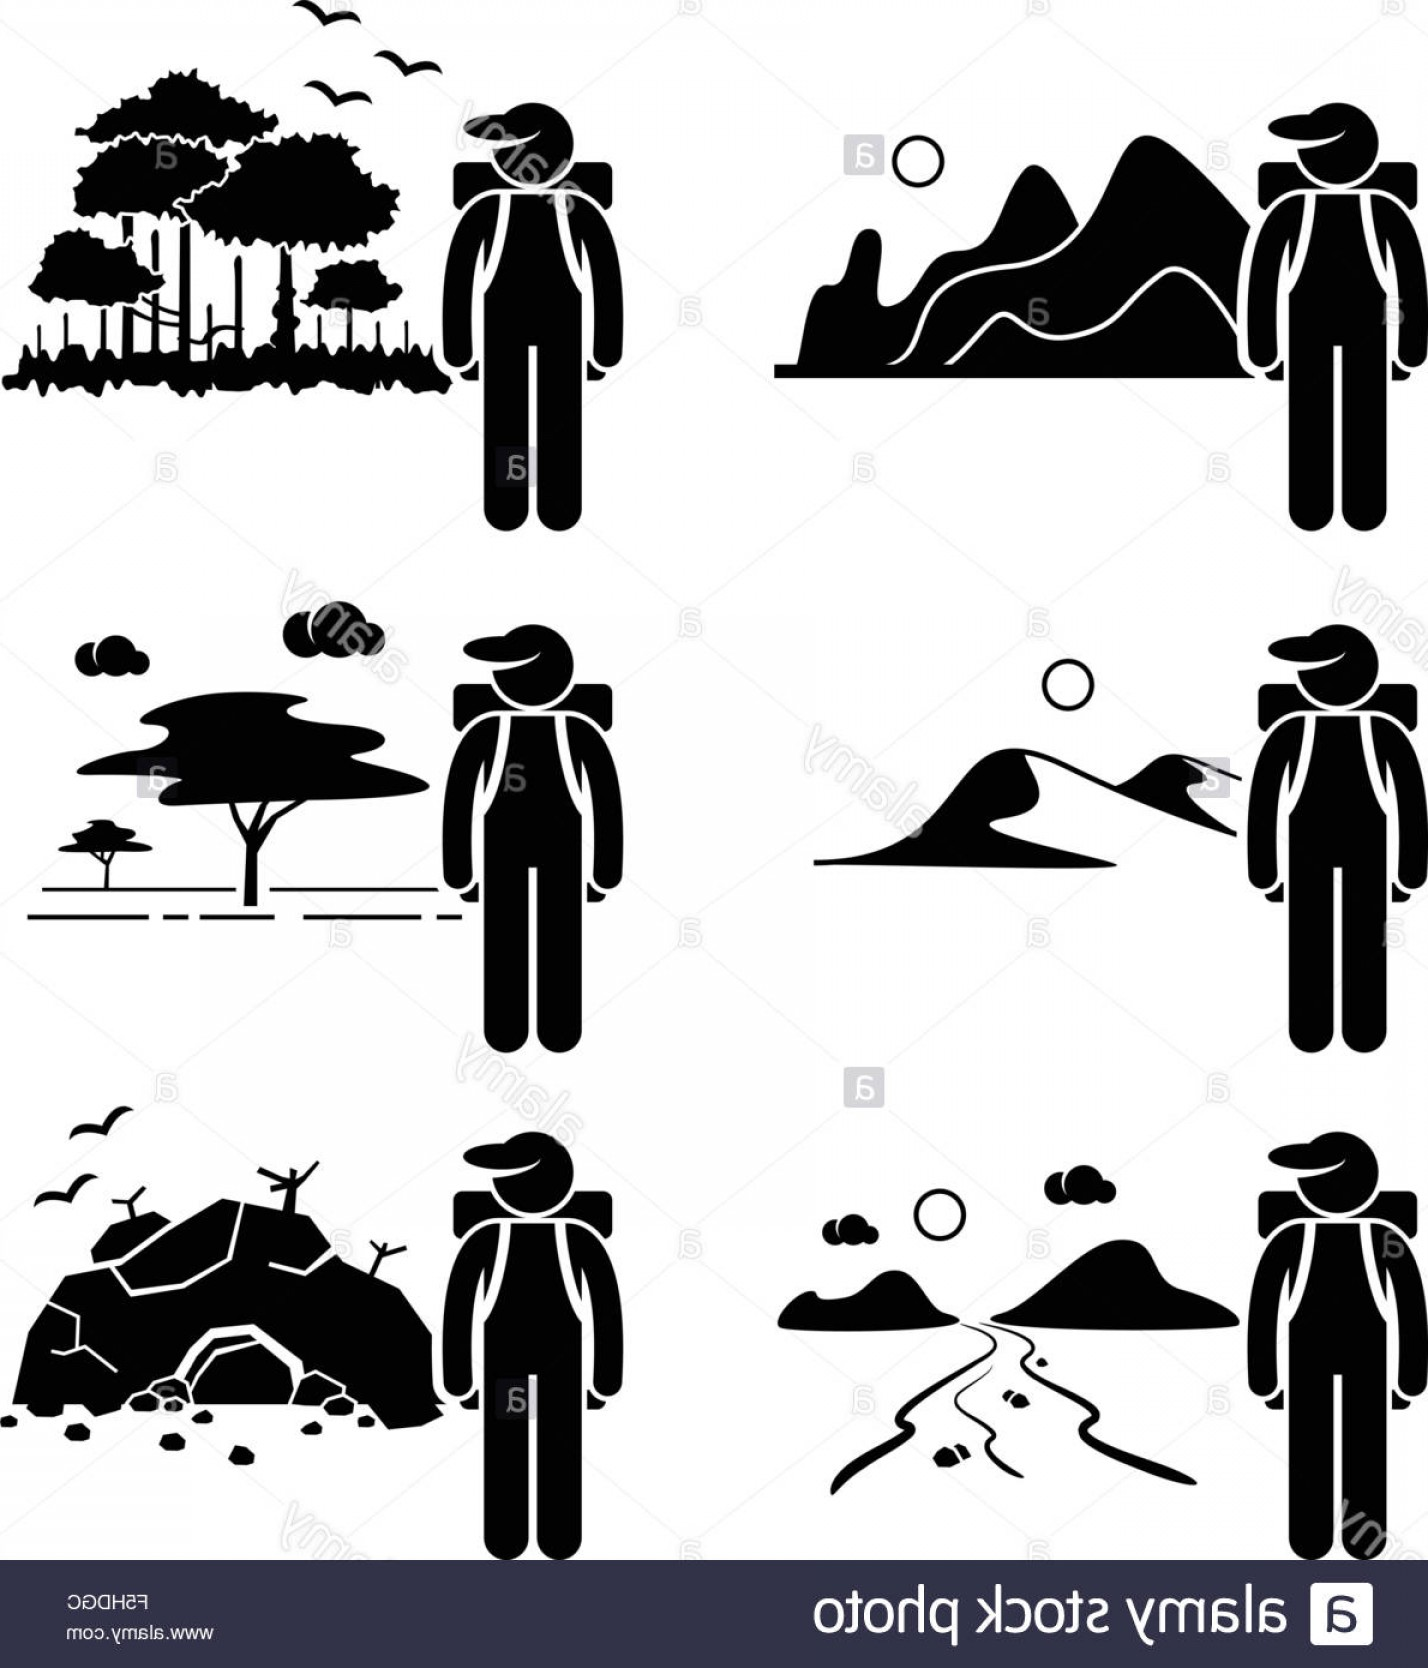 River Silhouette Vector Art: Stock Photo Explorer Adventure At Mountain Rainforest Desert Savanna River Cave